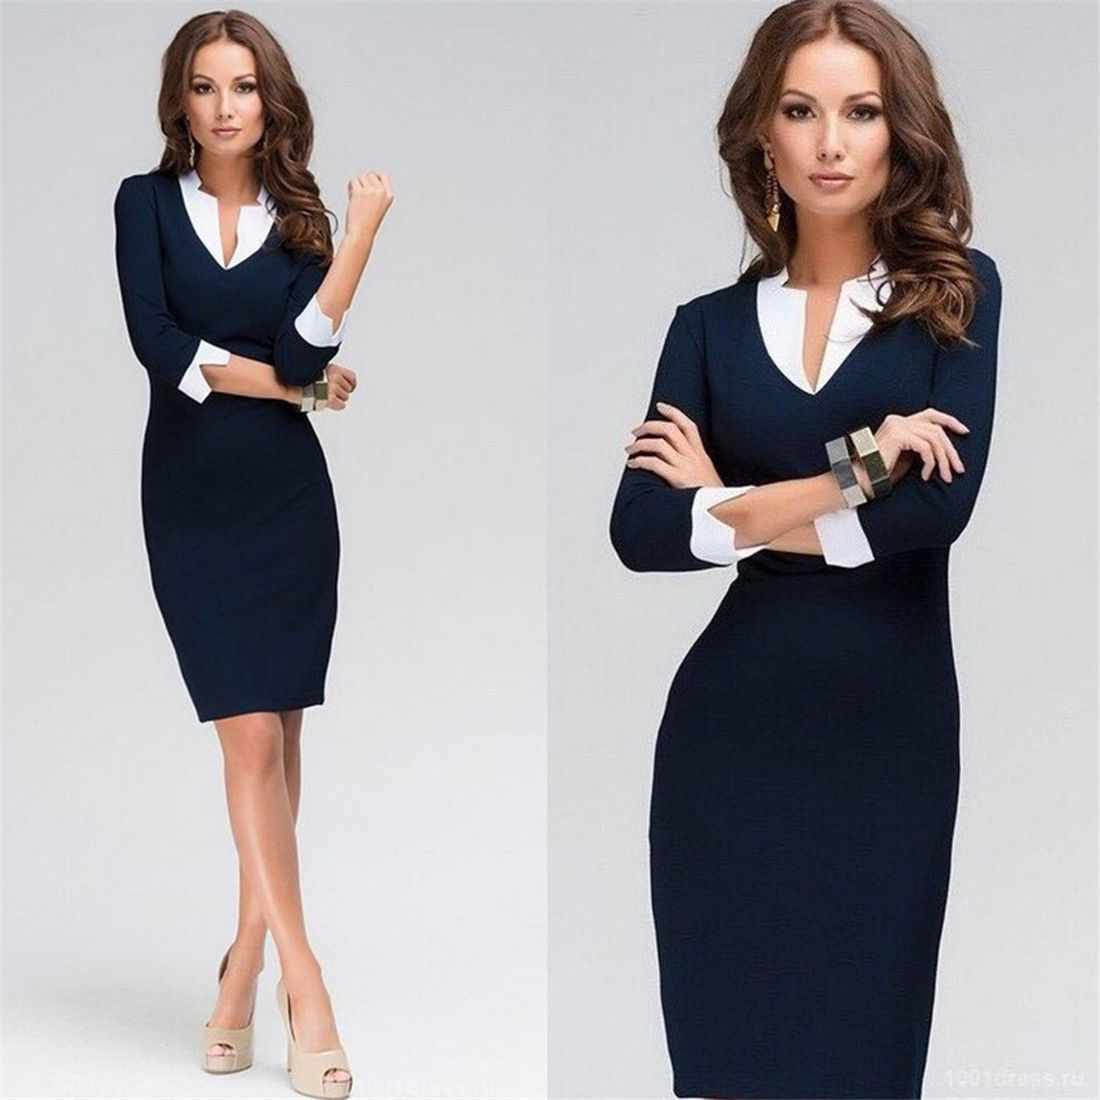 Women Smart Bodycon Mid Sleeve Party Cocktail Pencil Dress Black Vestido  Casual 8267312eb127